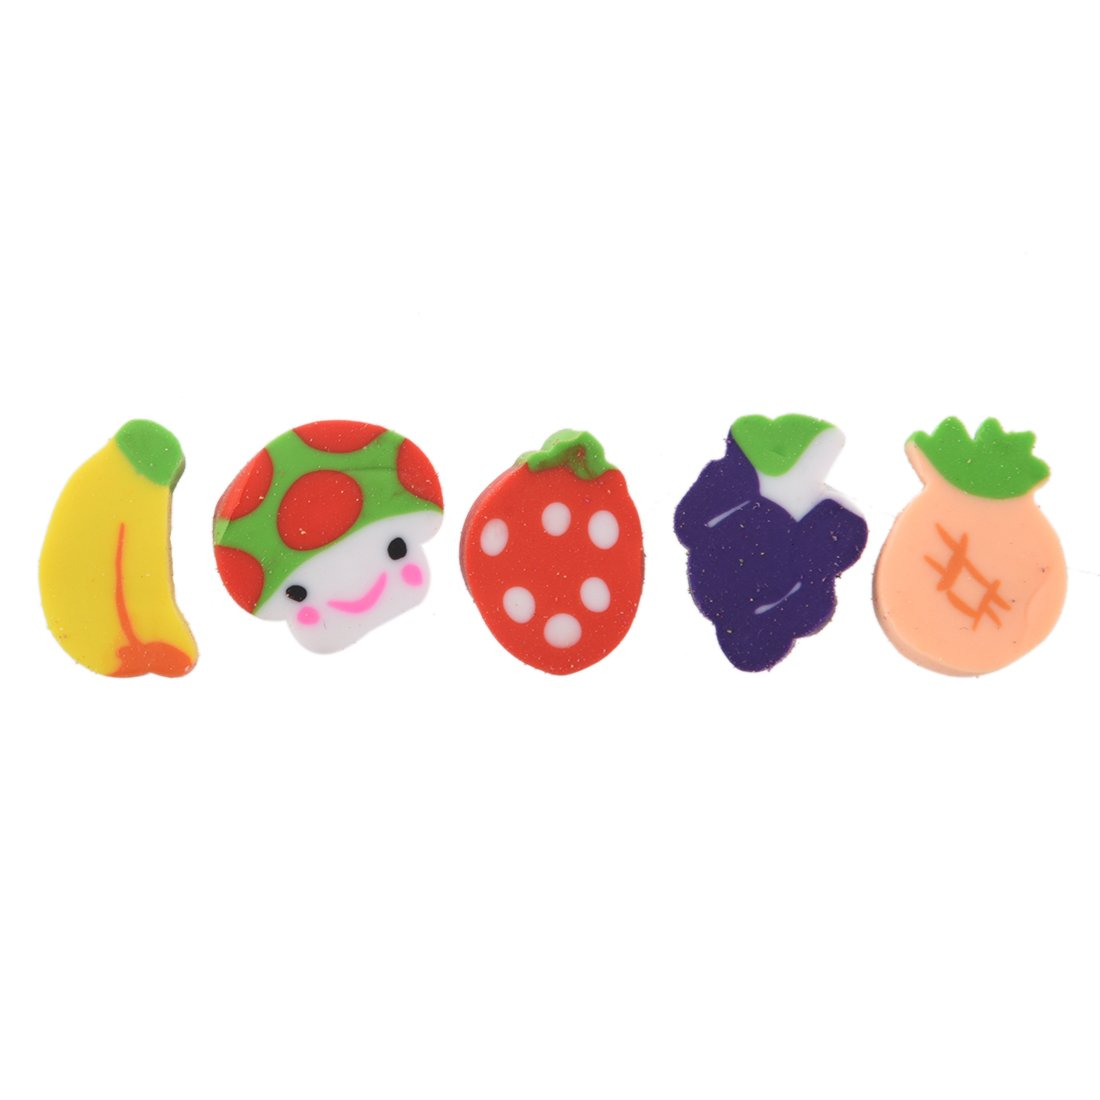 Erasers - SODIAL (R) 50 x Mini Fruit Shapes Colorful Erasers SODIAL(R)